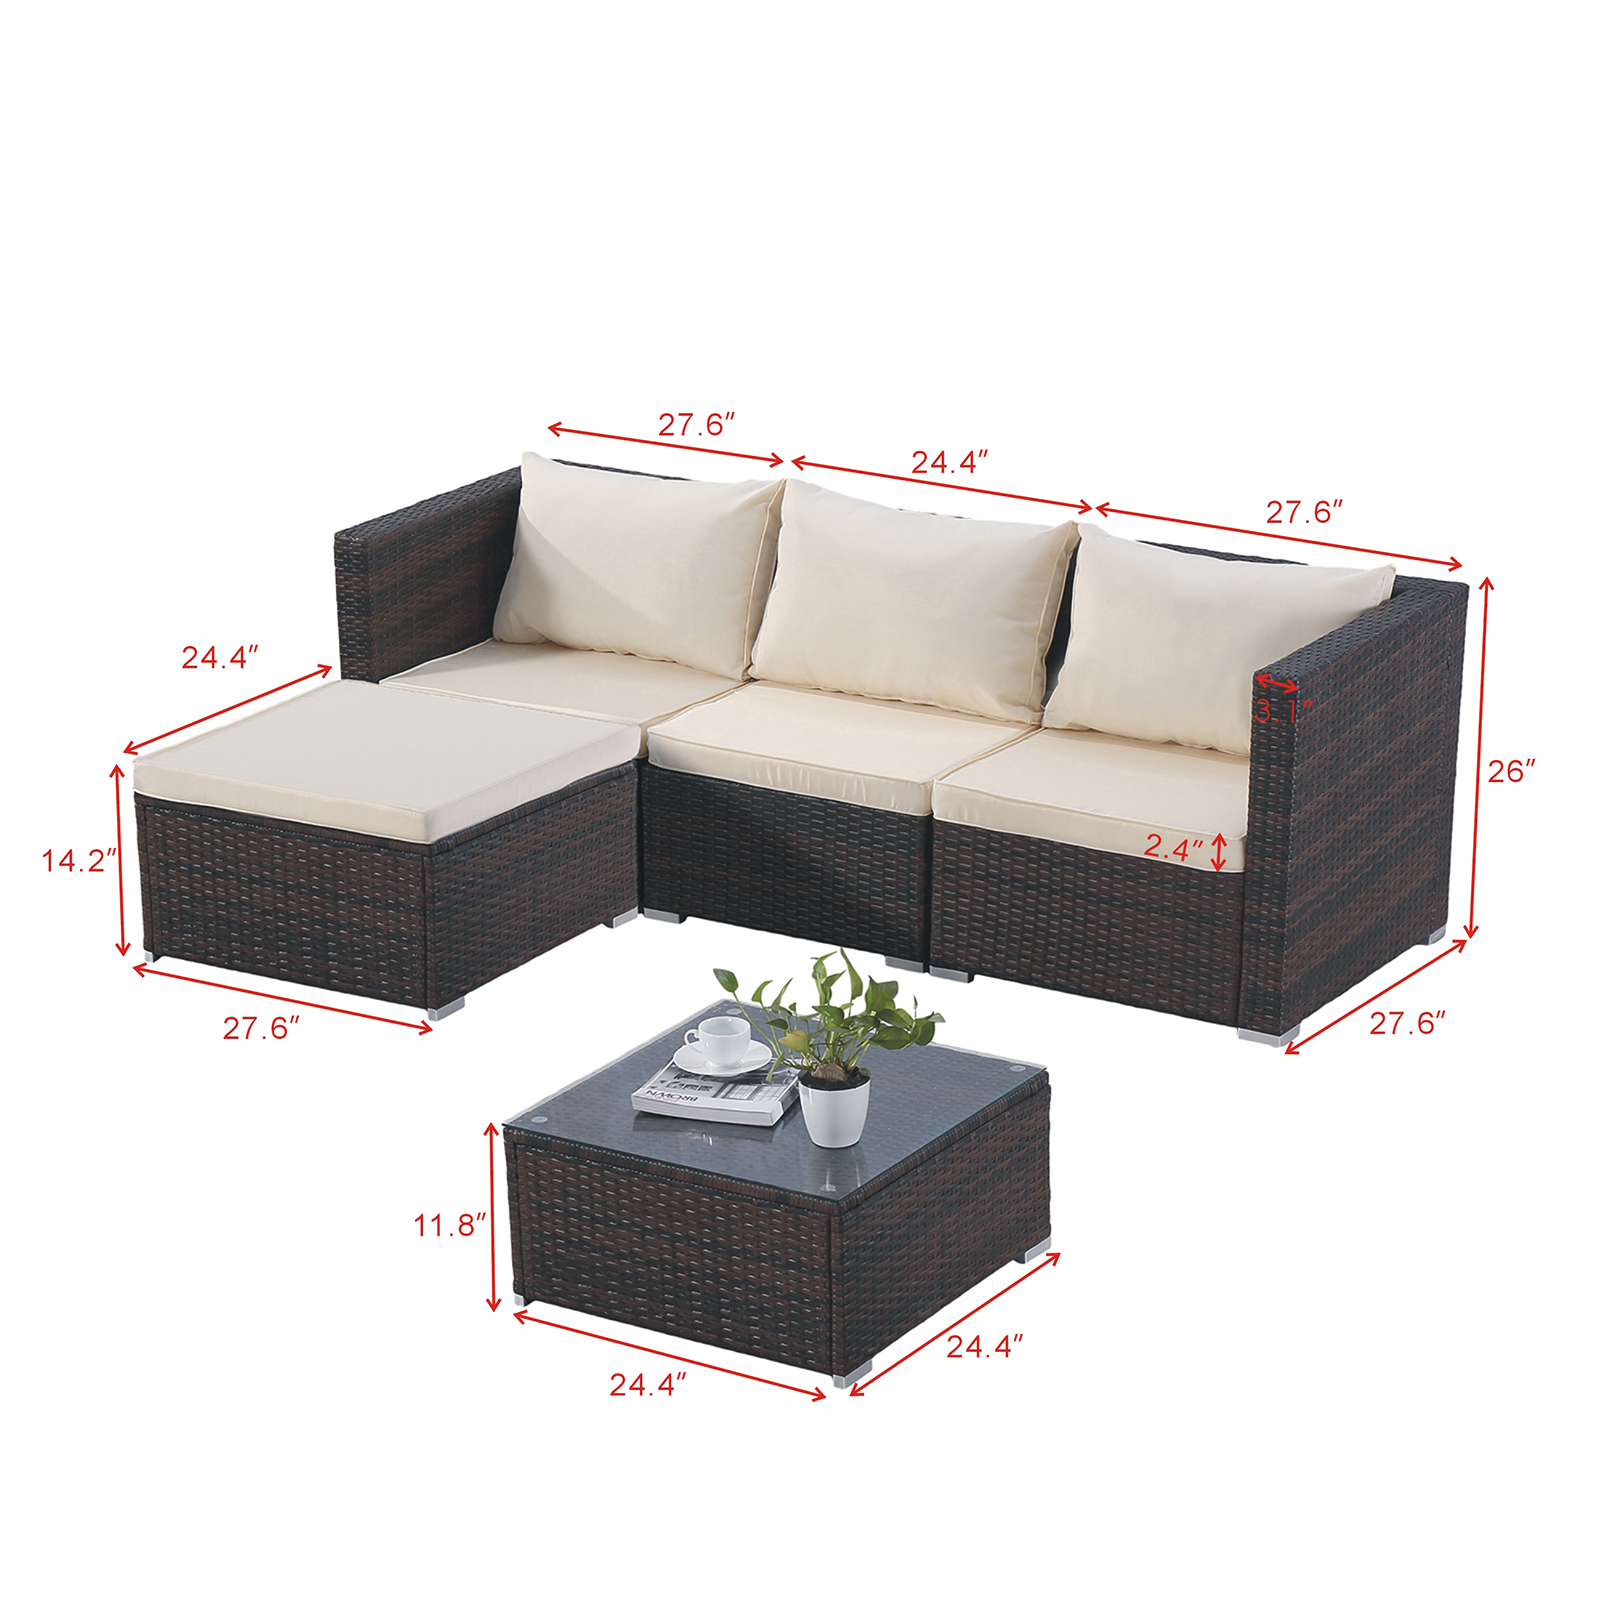 Rattan Twin Sofa Details About 5pc Rattan Wicker Sofa Set Sectional Cushioned Furniture Patio Outdoor Brown